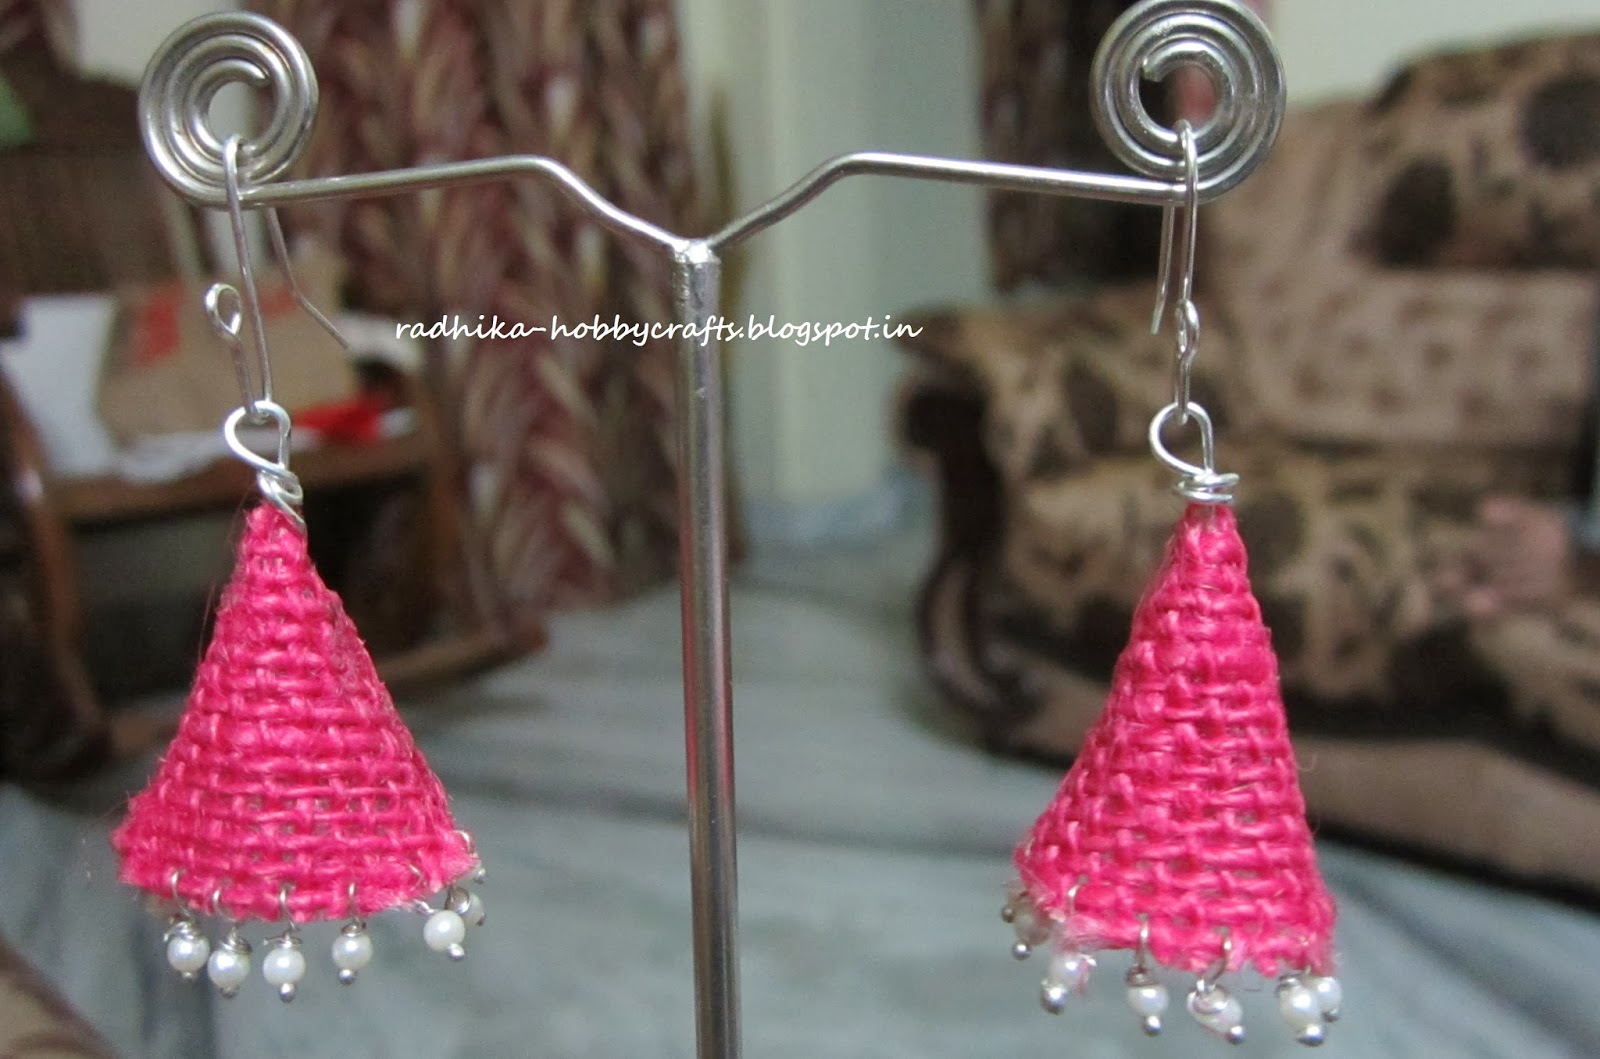 Hobby Crafts :): Quilled Jhumkas and Jute earrings